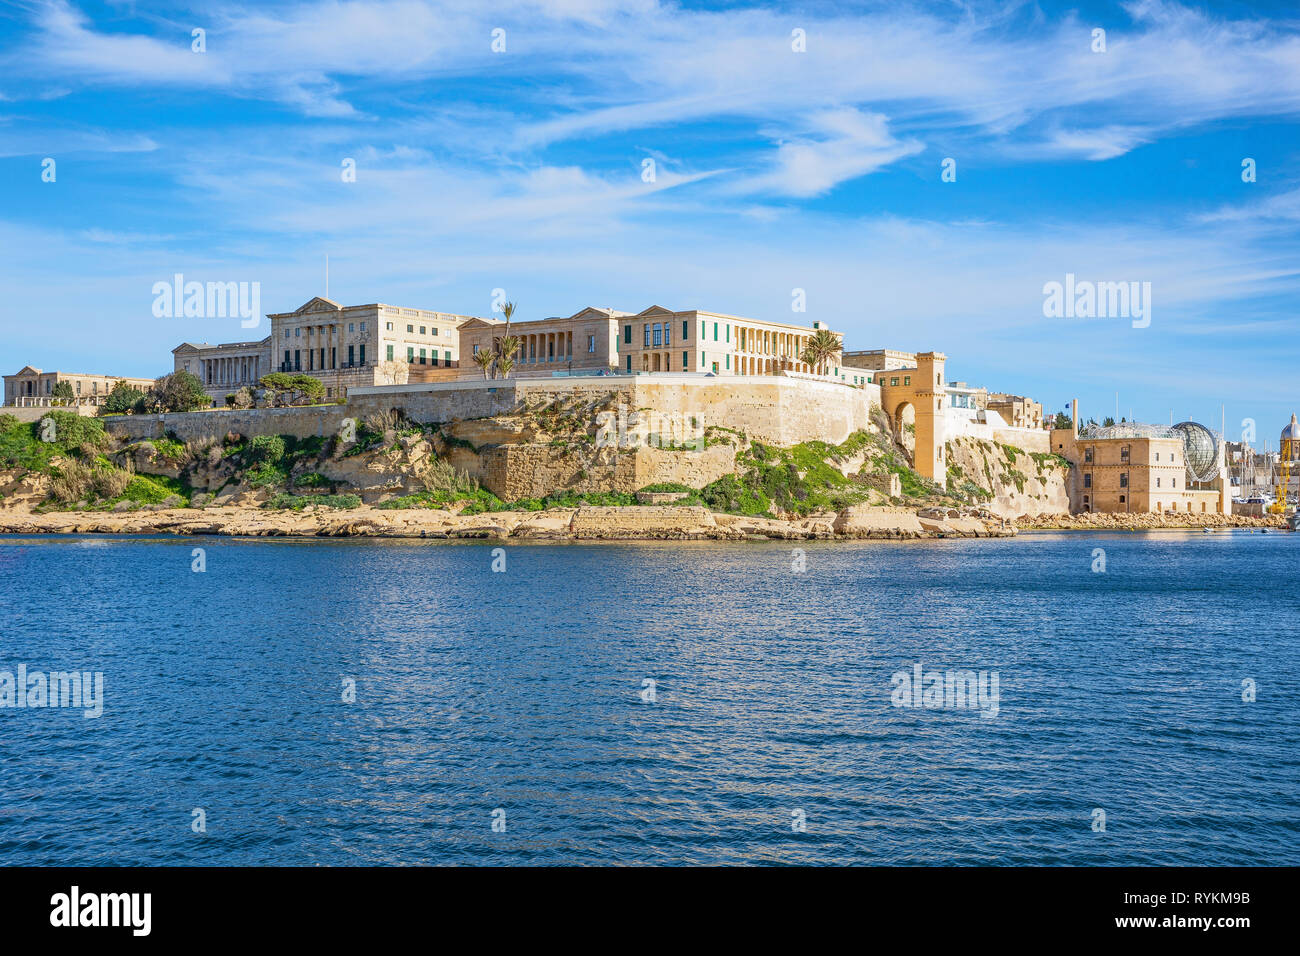 Malta, Valletta, the Bighi Royal Naval Hospital seen from the sea - Stock Image